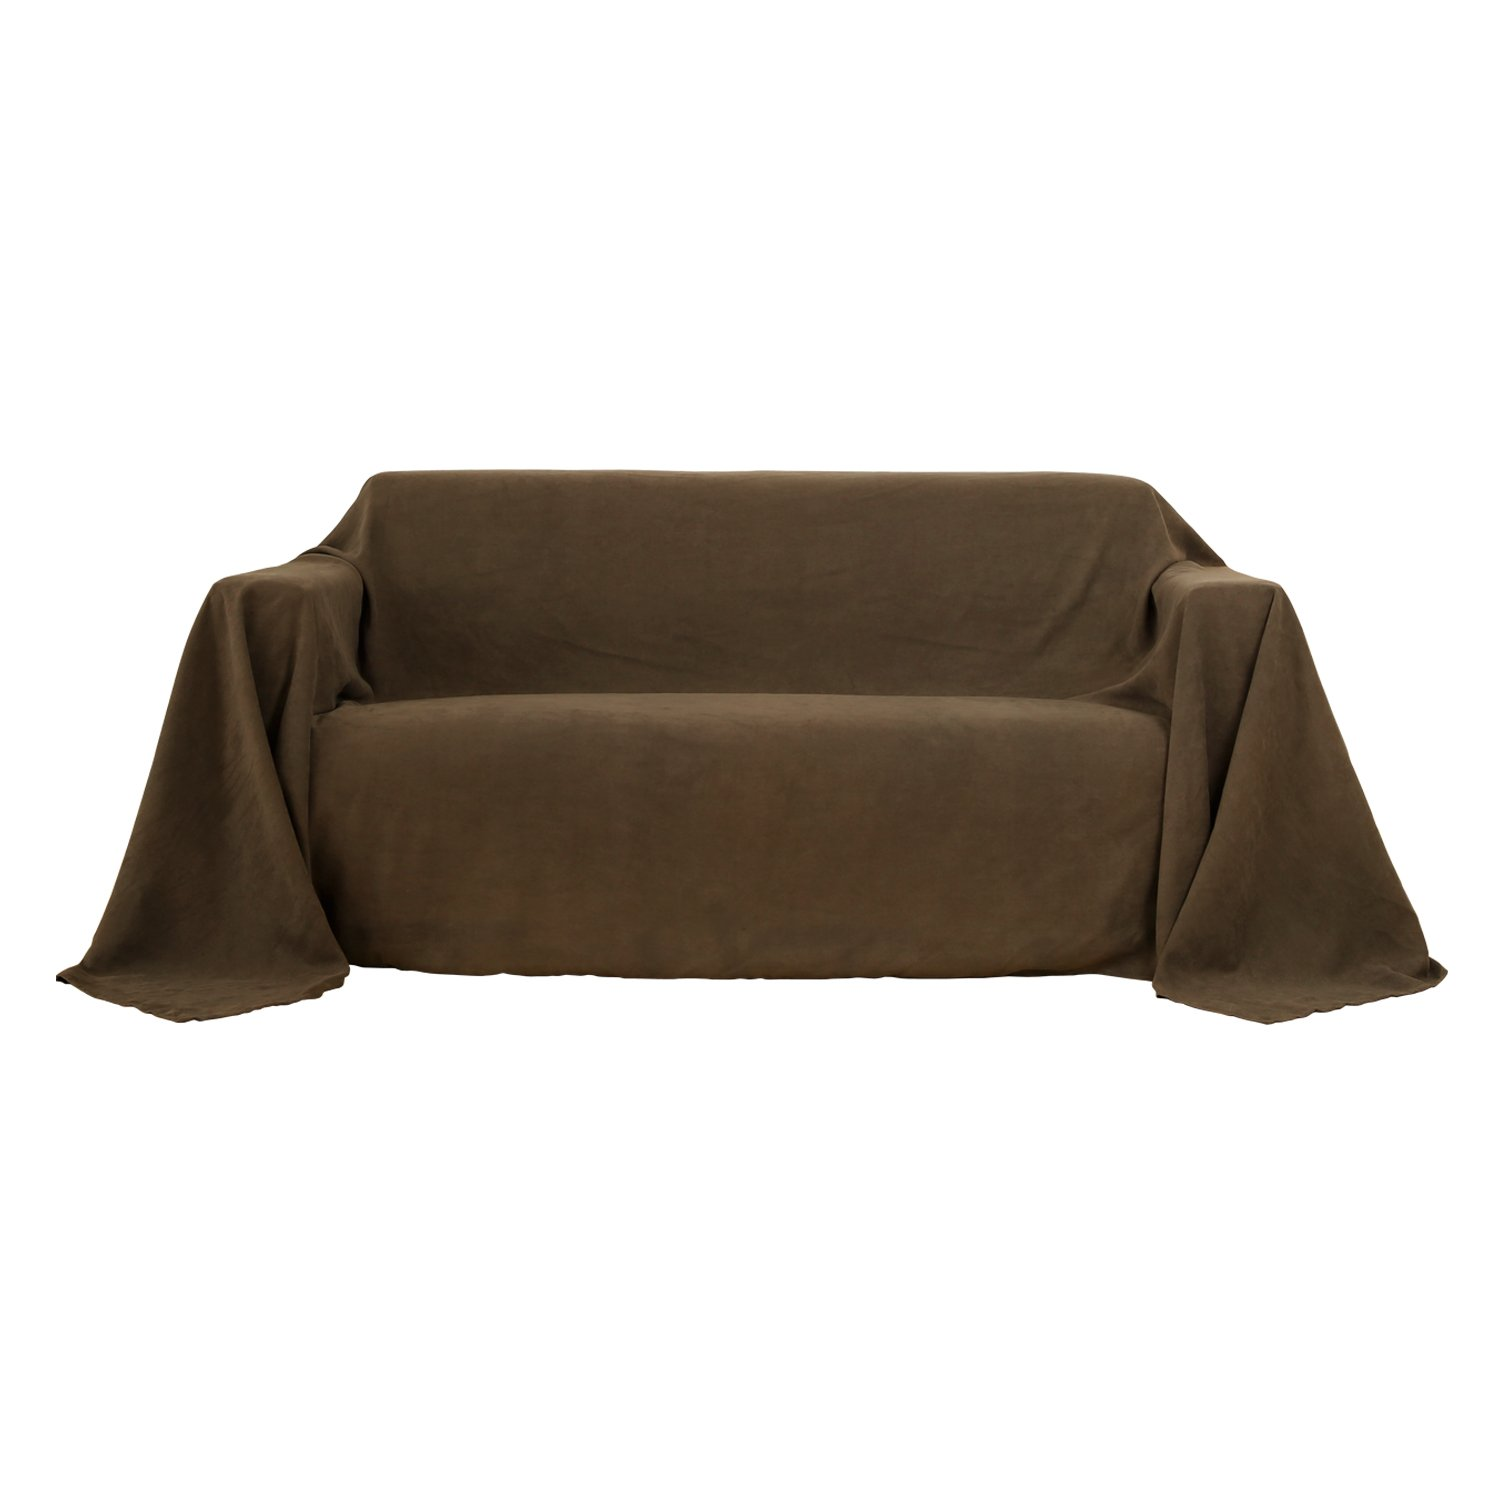 Deconovo Solid Suede Fabric Sofa Cover Slipcover Lightweight Dust Proof Sofa Cover for Couch 210x280cm Brown